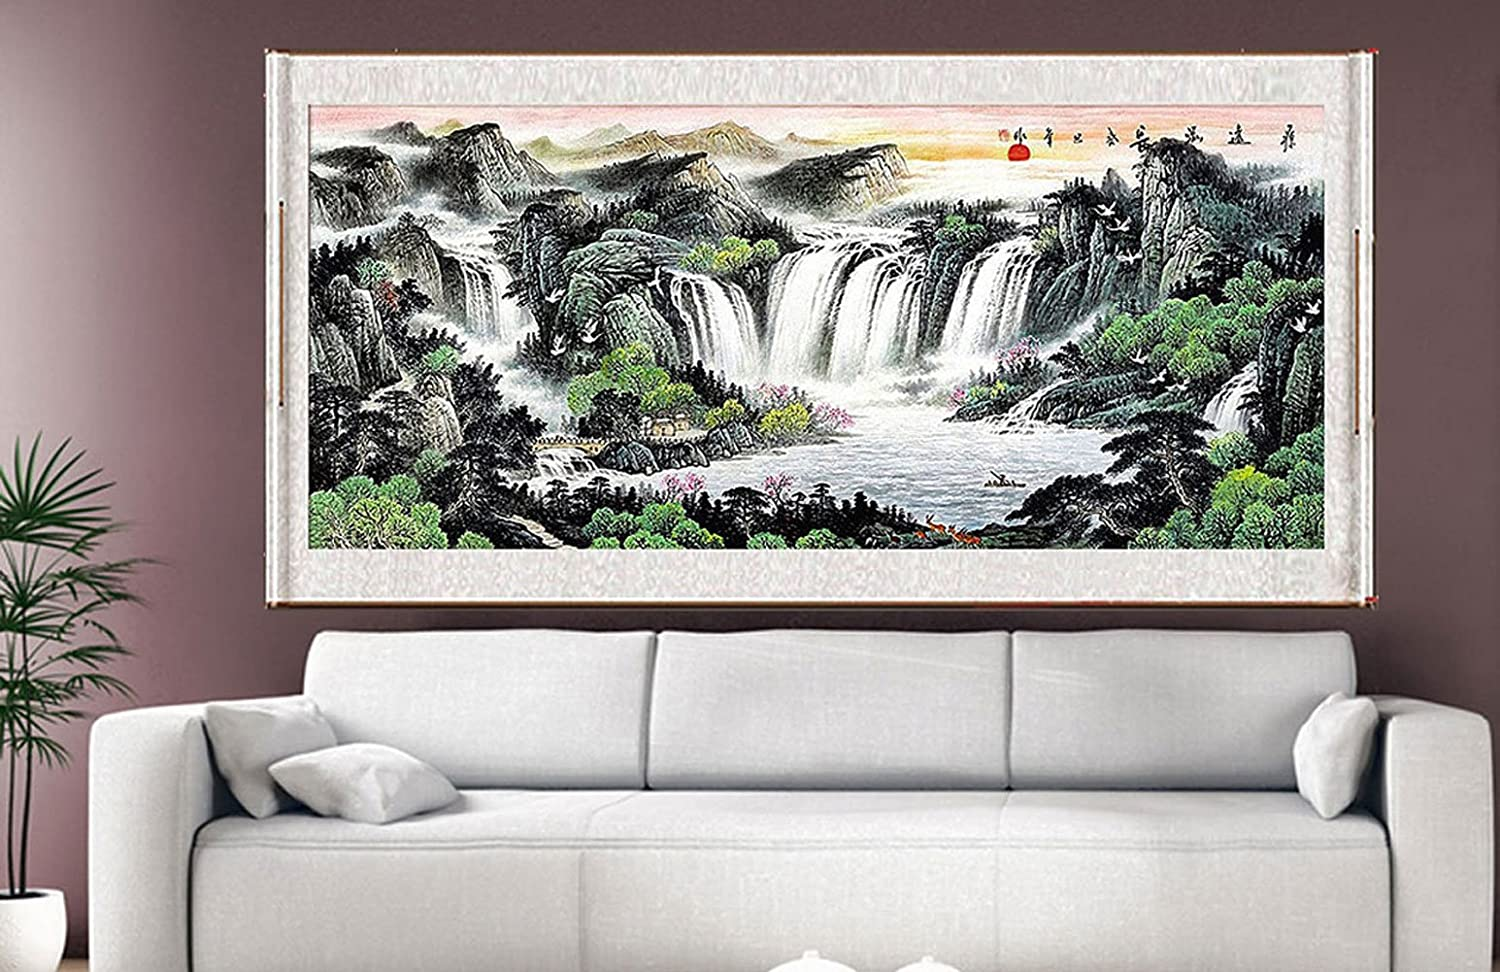 feng shui art for office. Amazon.com: Waterfall Painting, Feng Shui Fountain Water Asian Wall Art Prints Decor Large Scroll Chinese Landscape Paintings For Christmas Home Office